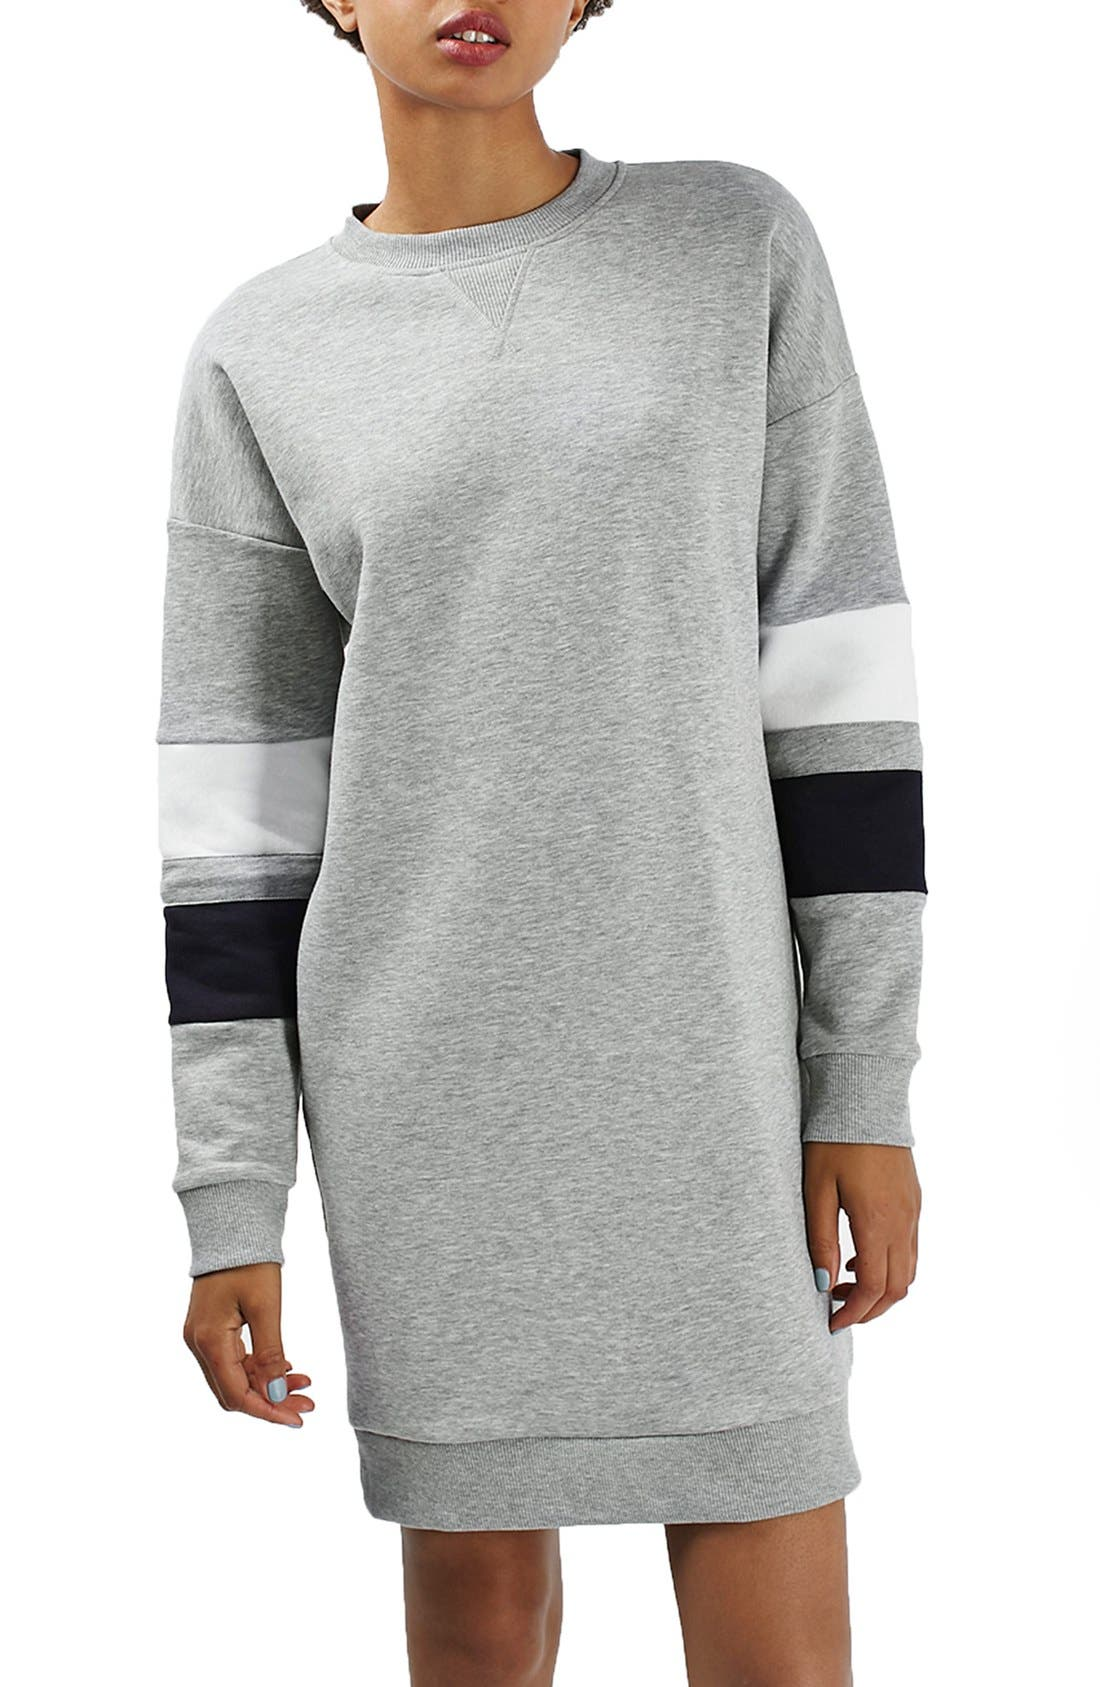 Alternate Image 1 Selected - Topshop Colorblock Sweatshirt Dress